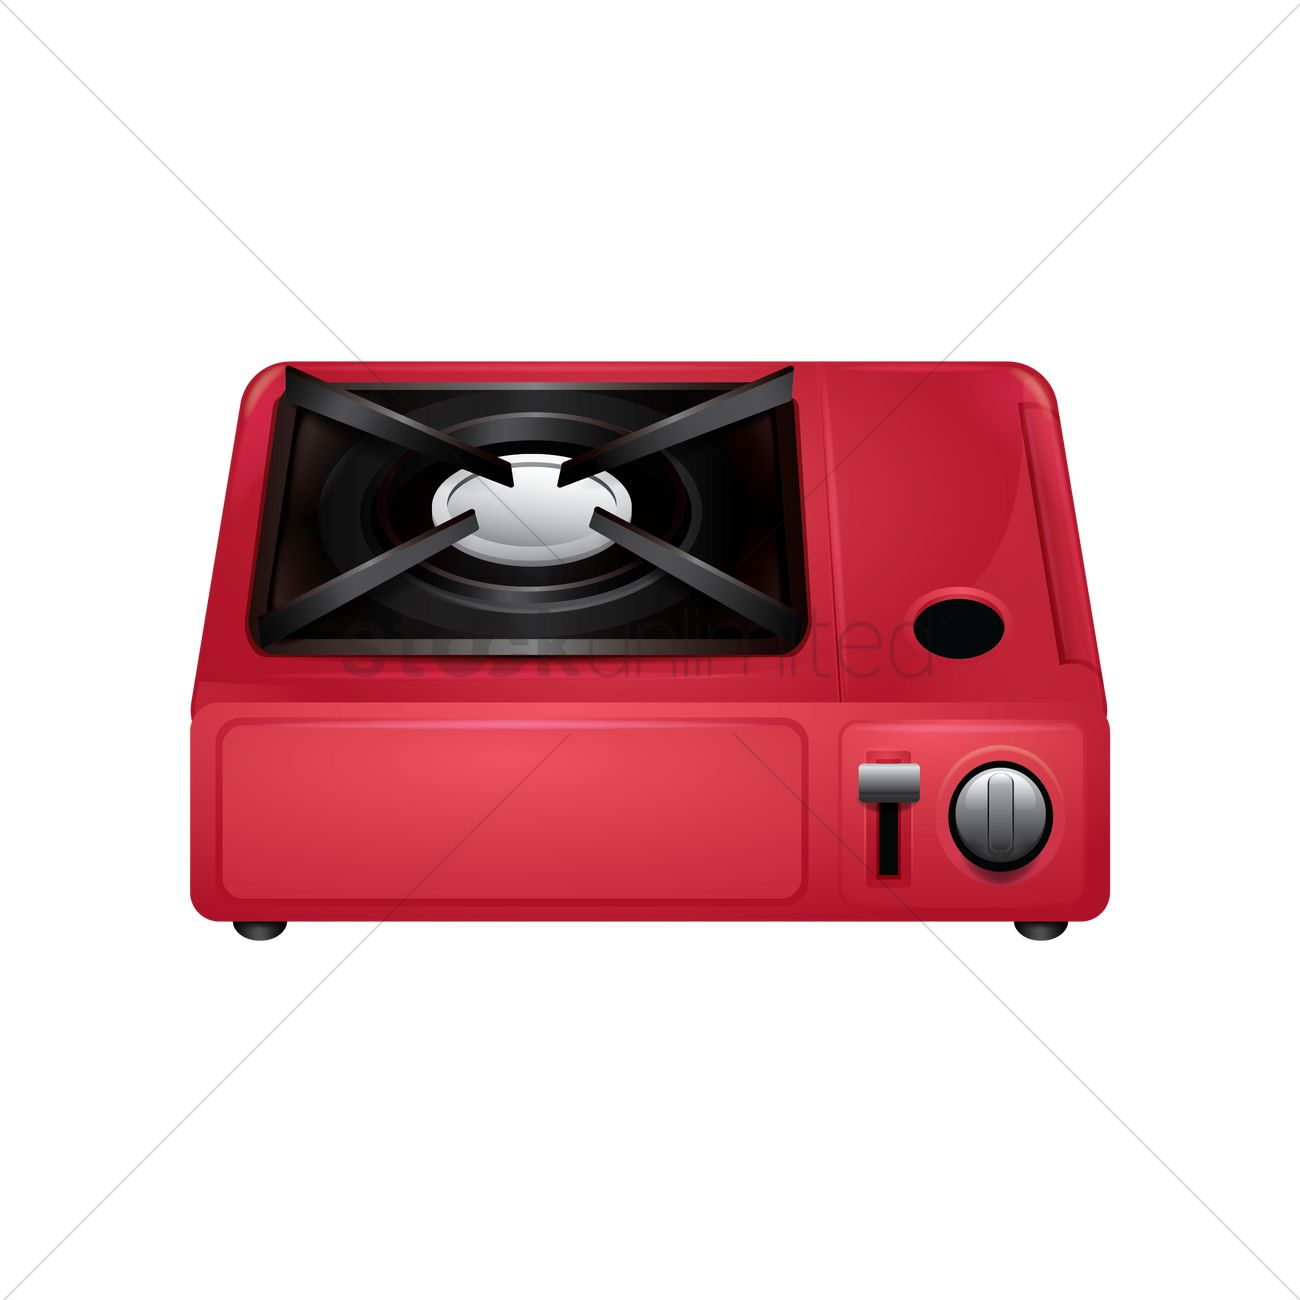 Portable gas stove Vector Image.